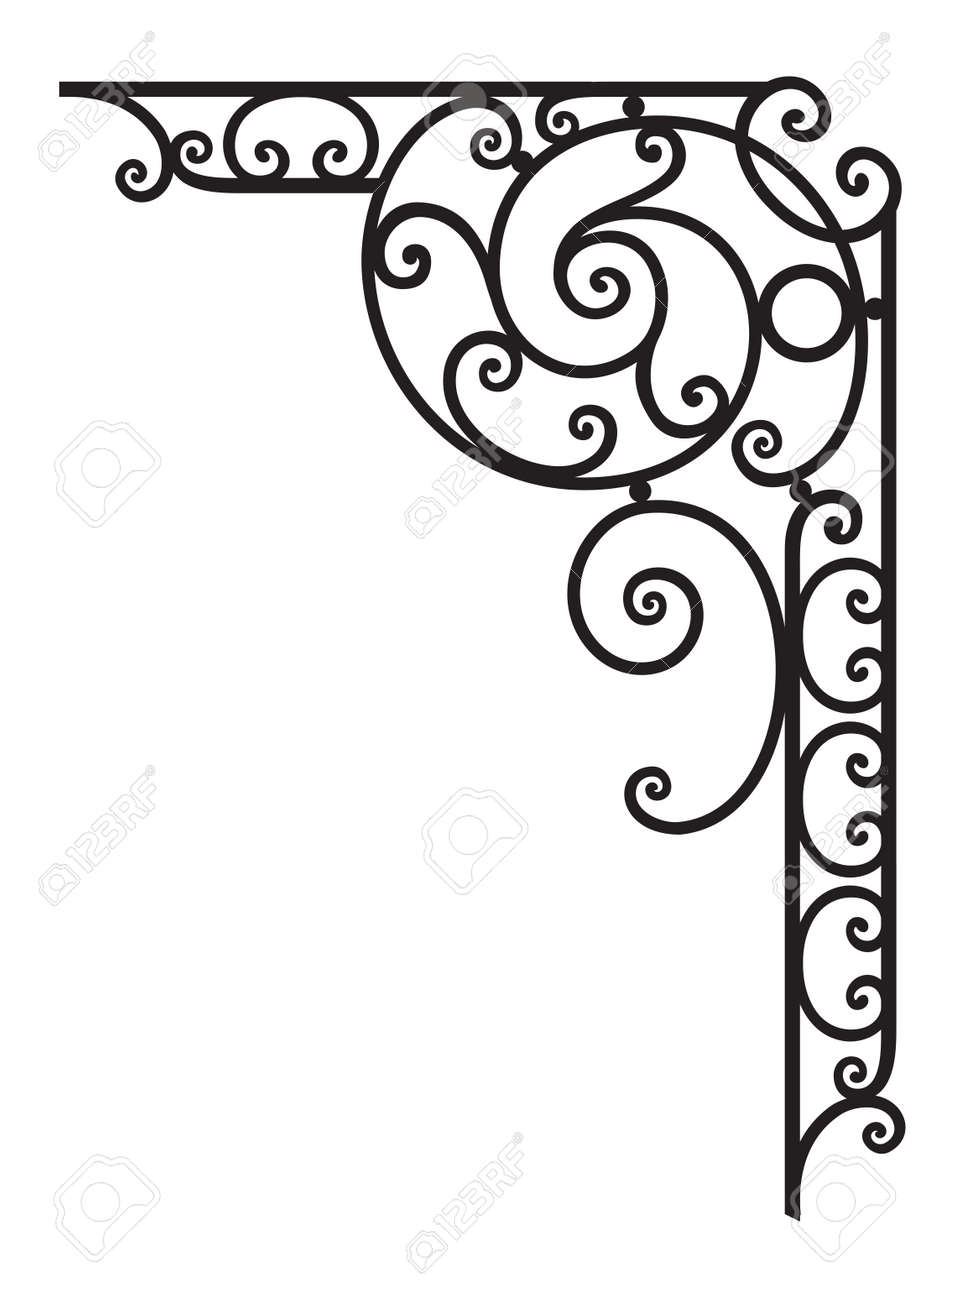 Decorative Corner Frame Royalty Free Cliparts, Vectors, And Stock ...